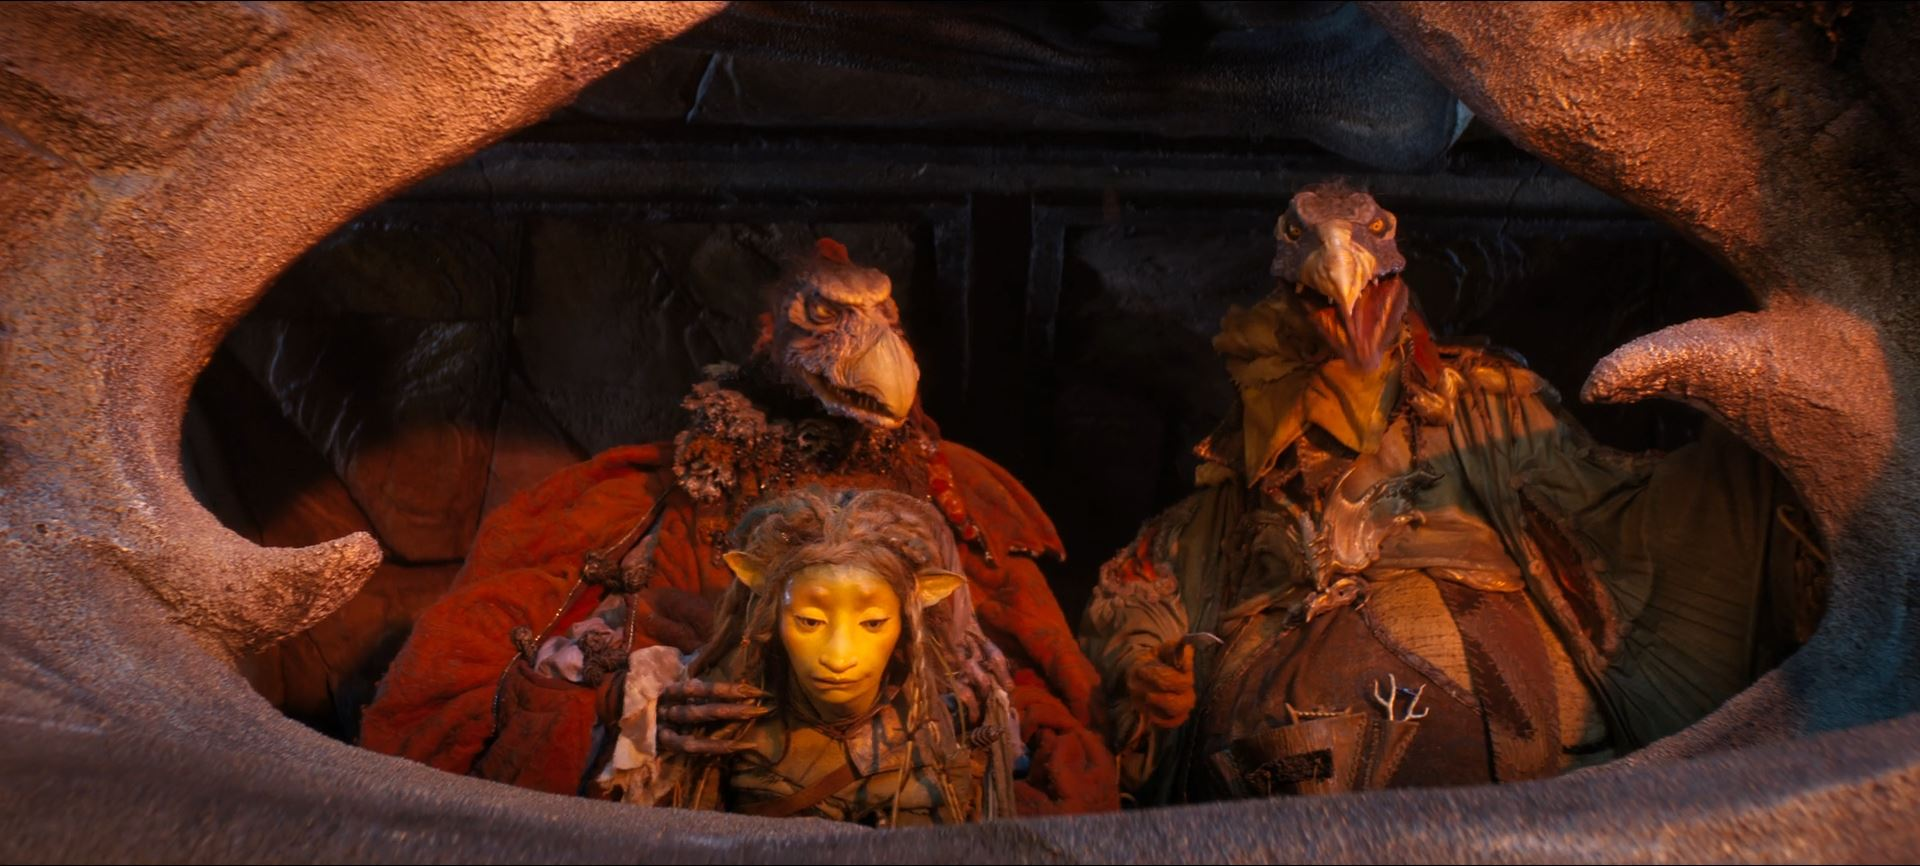 The Dark Crystal Age of Resistance - Rian escapes